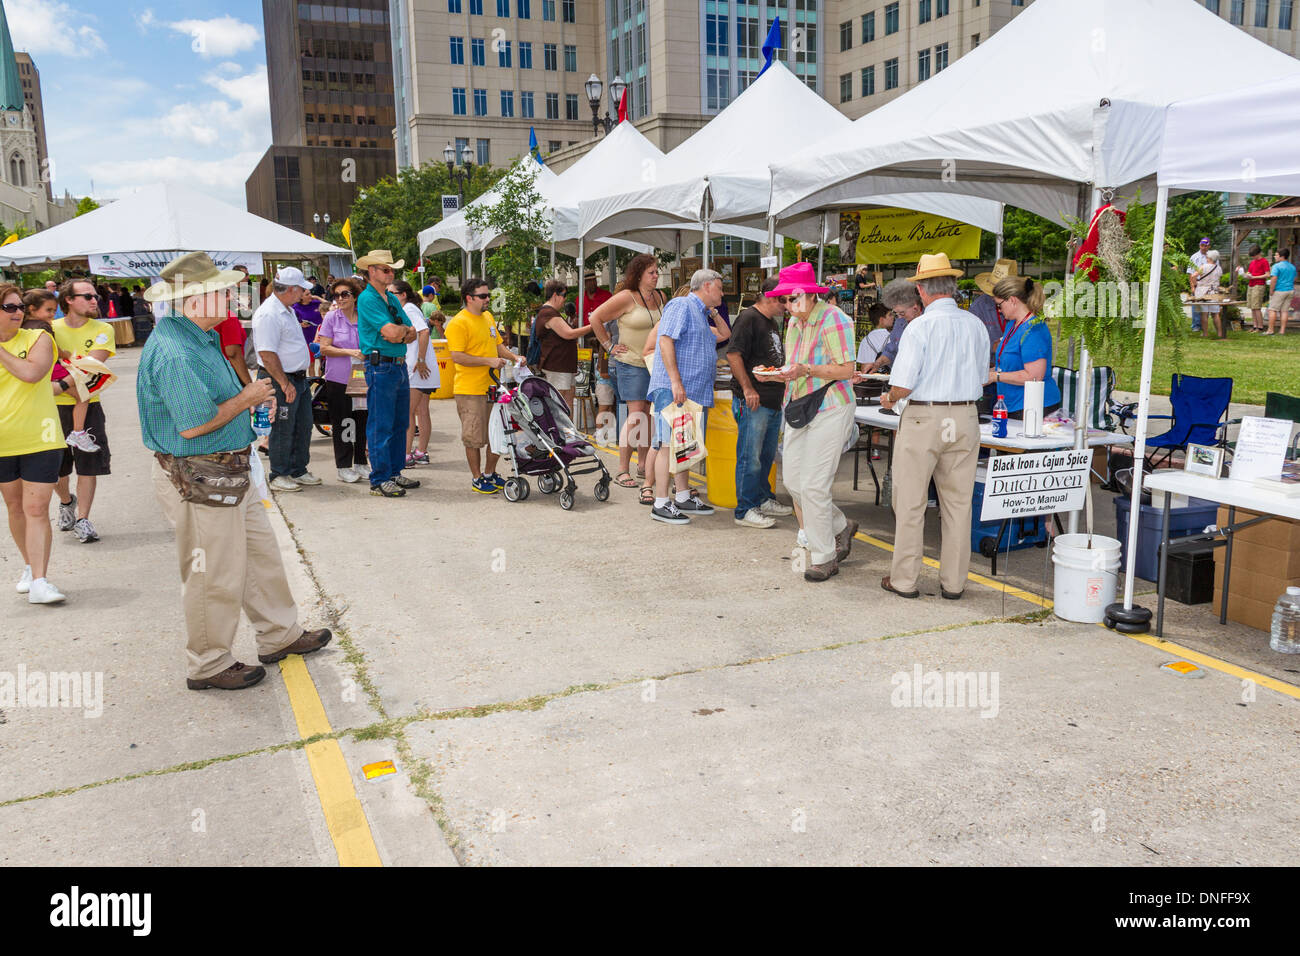 Dutch Oven cooking booth at Louisiana 2012 Bicentennial Family Homecoming Celebration in Baton Rouge. - Stock Image